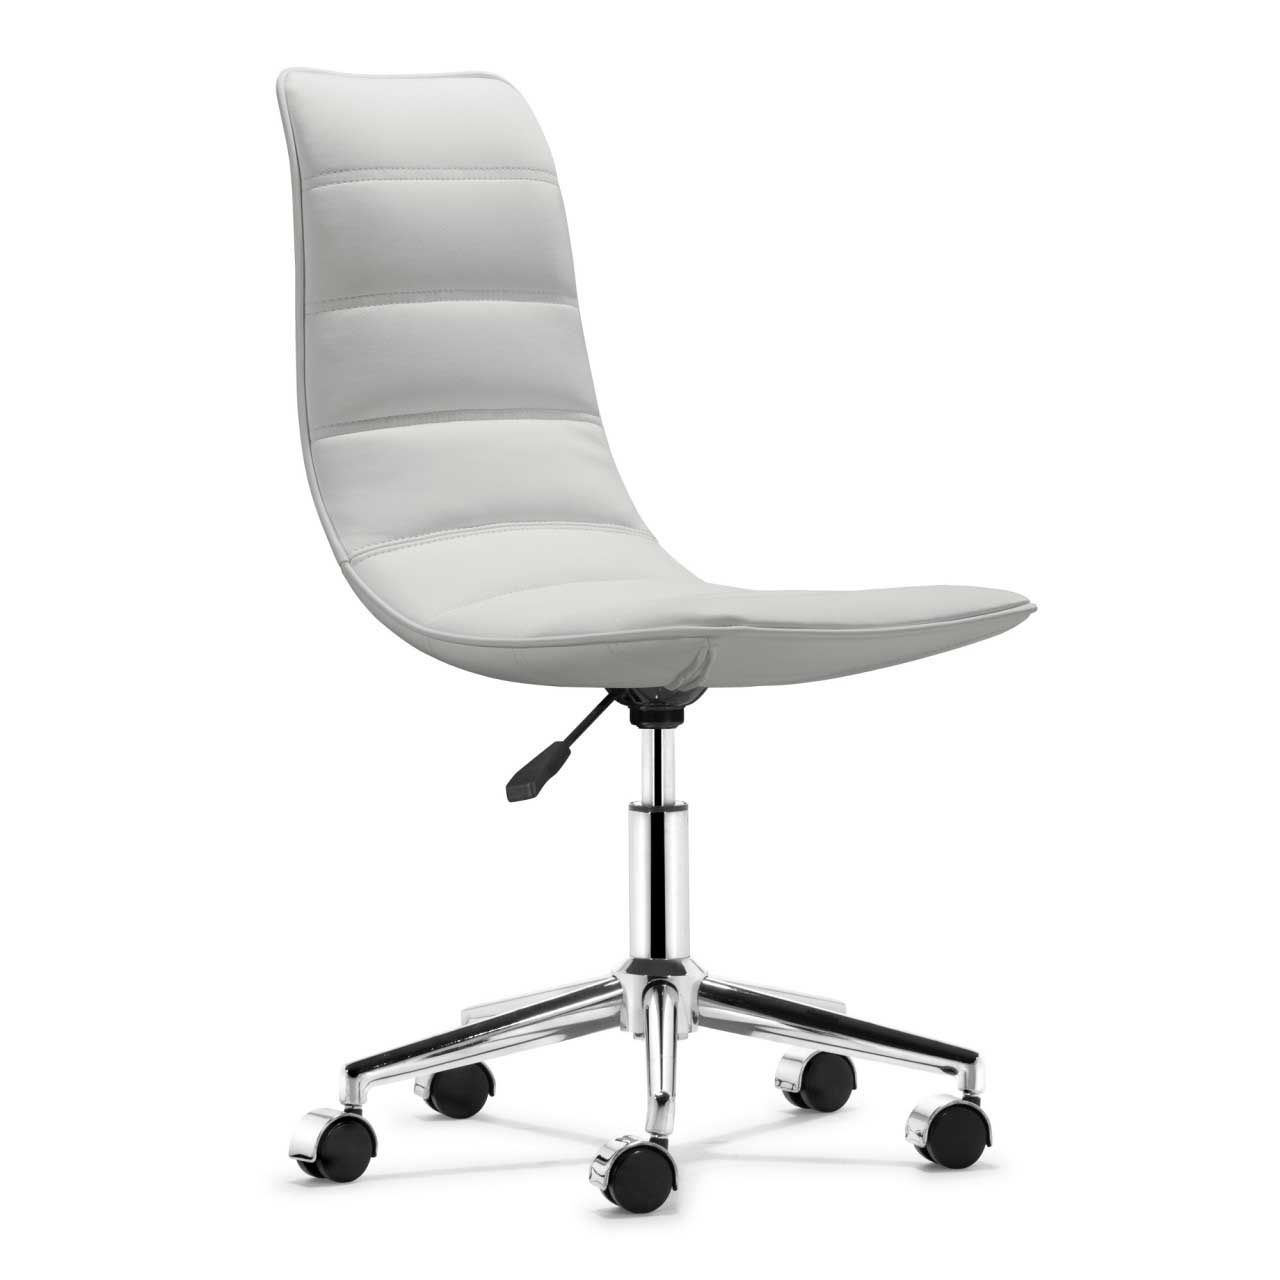 Armless Office Chairs With Wheels Home Furniture Collections Check More At Http